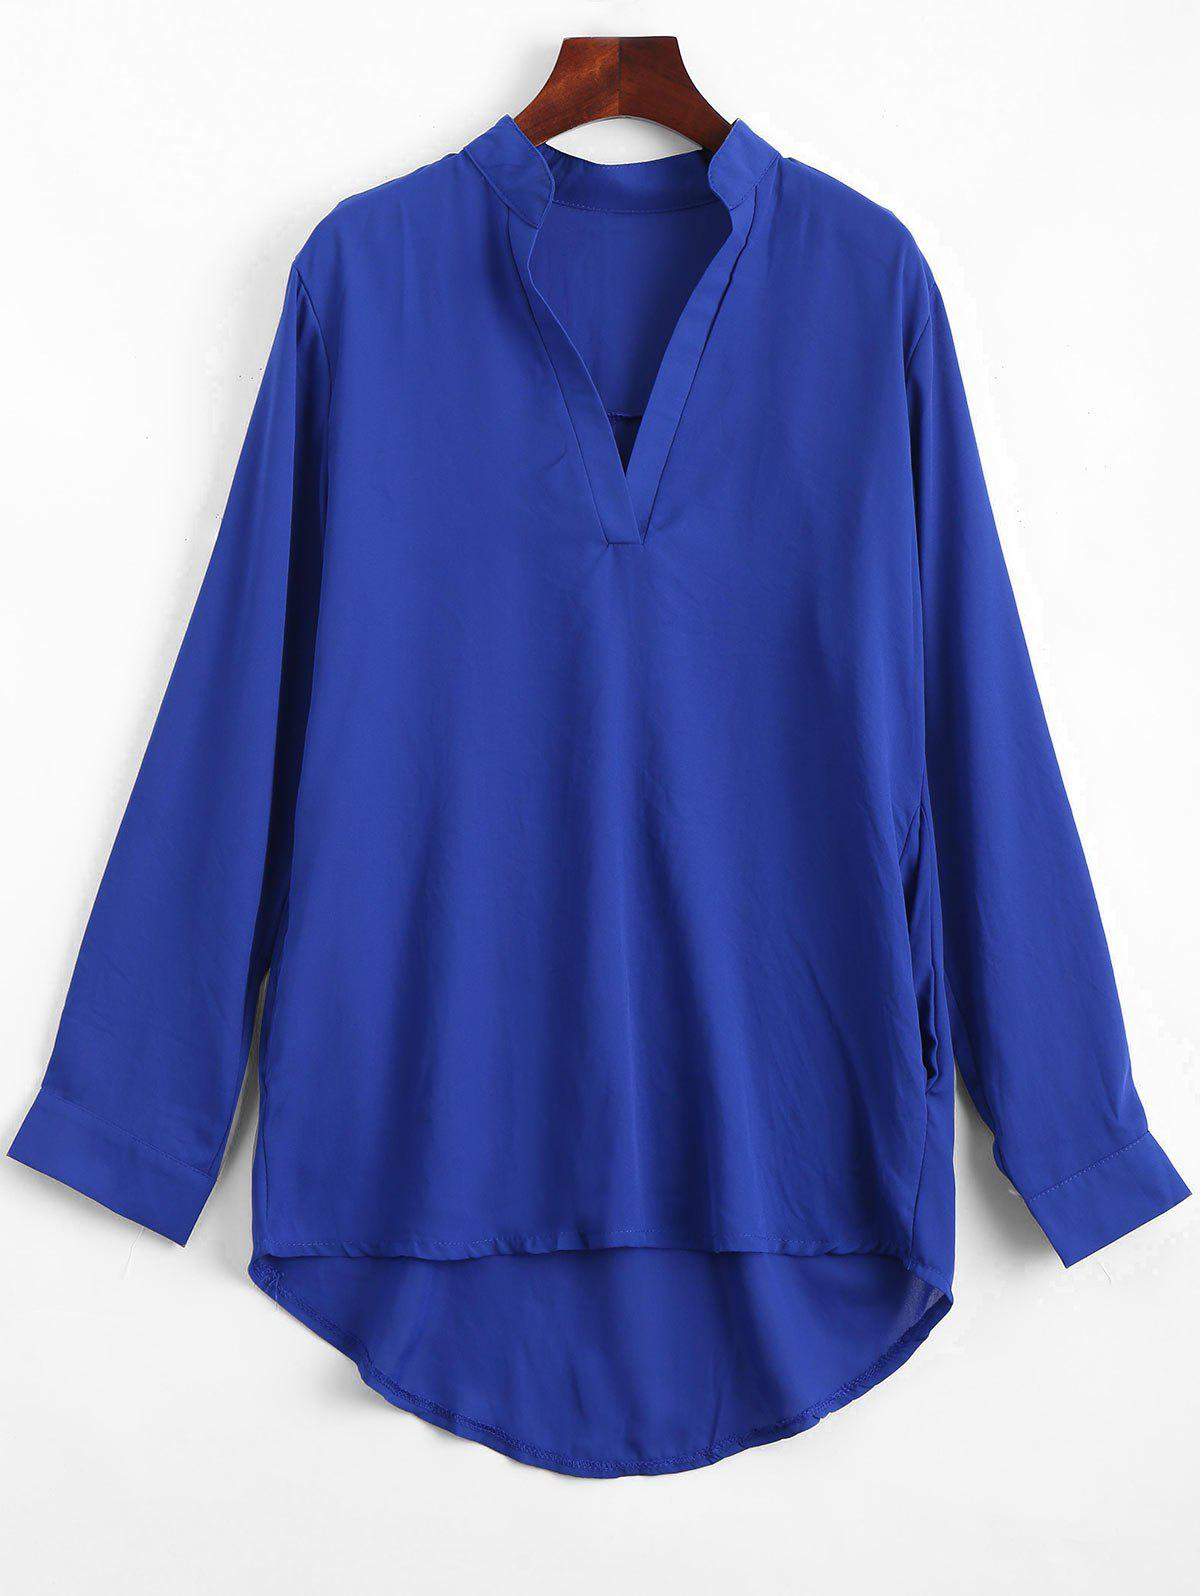 V-Ausschnitt Plain High Low Bluse